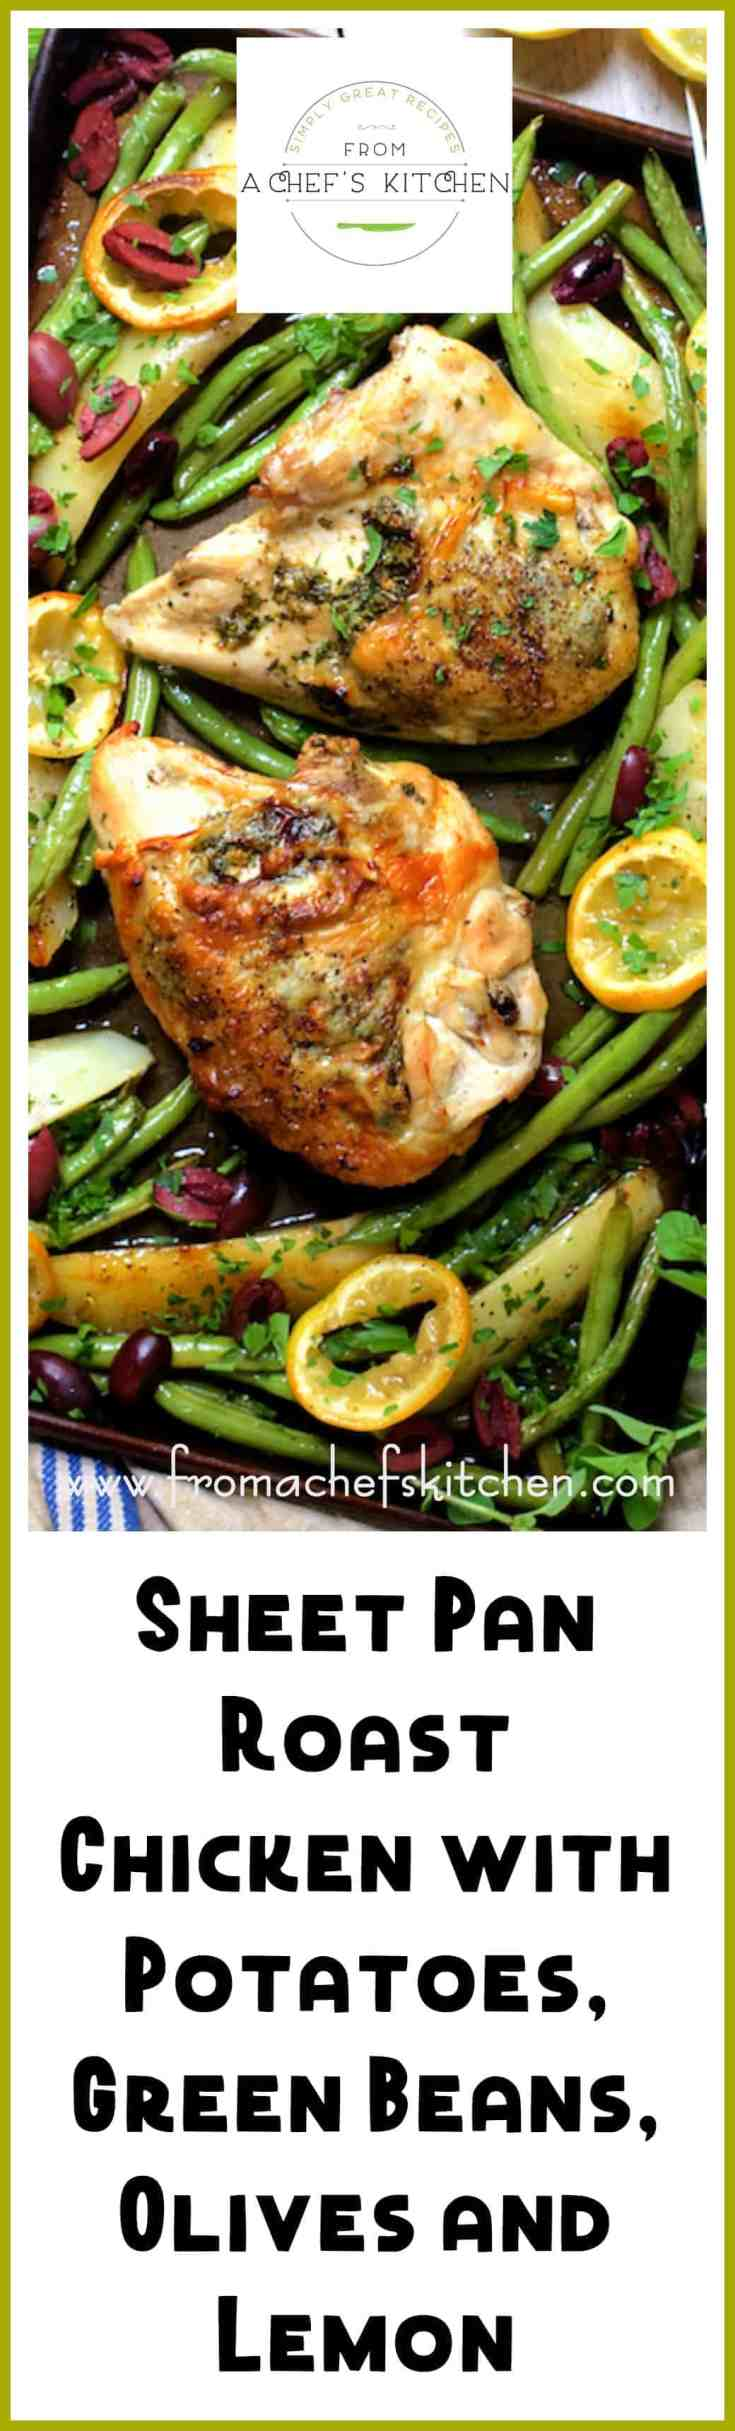 Sheet Pan Roast Chicken with Potatoes, Green Beans, Olives and Lemon is Mediterranean-inspired and a bright and lively way to get dinner on the table with minimal prep and clean-up.